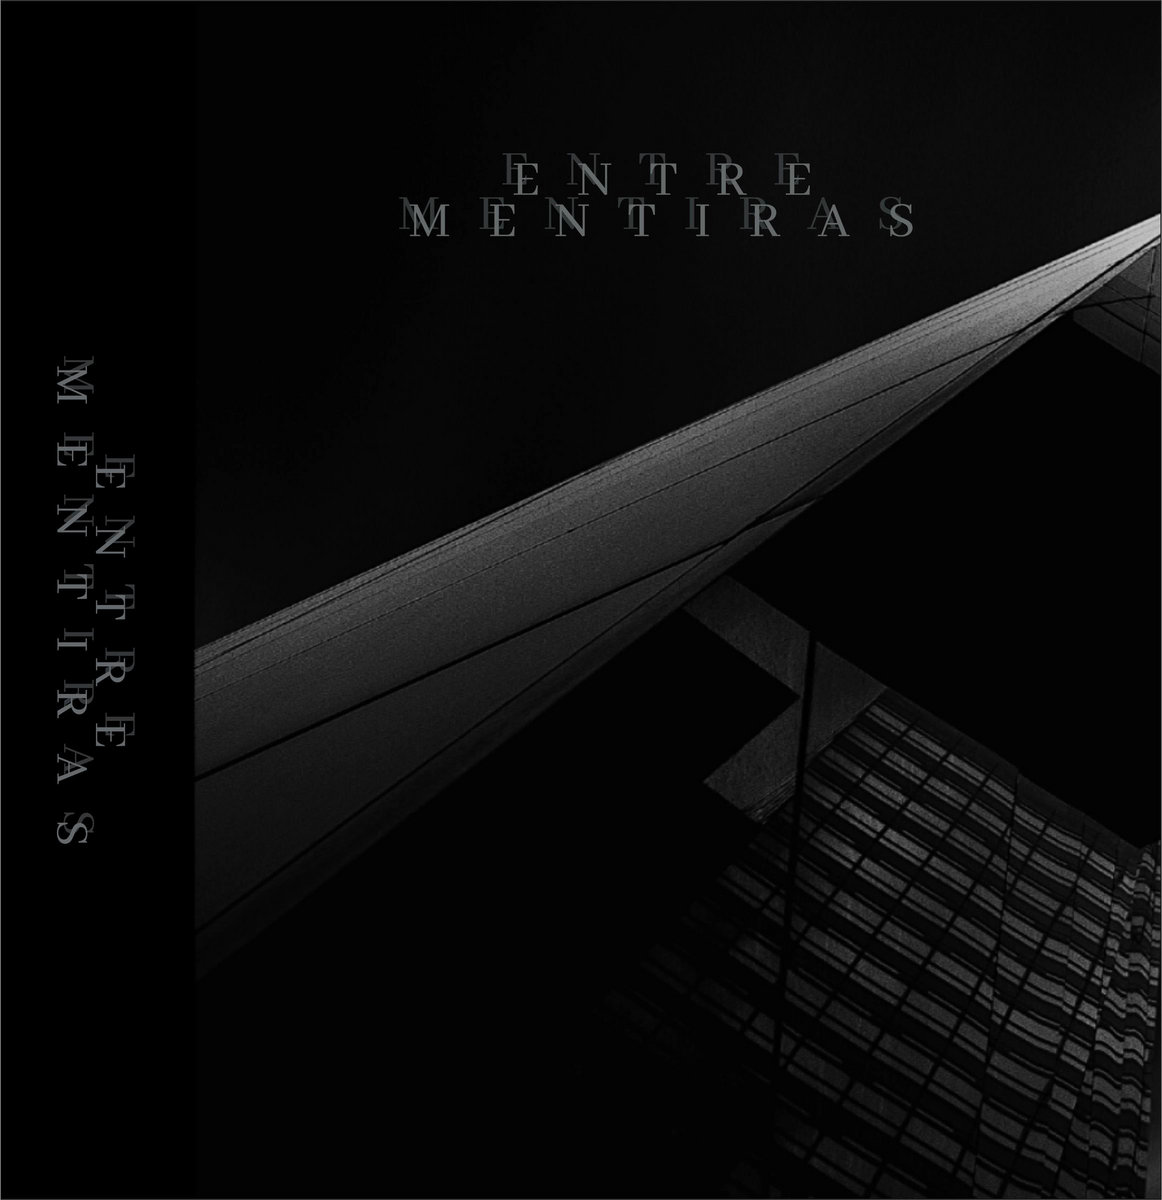 EntreMentiras, self-titled